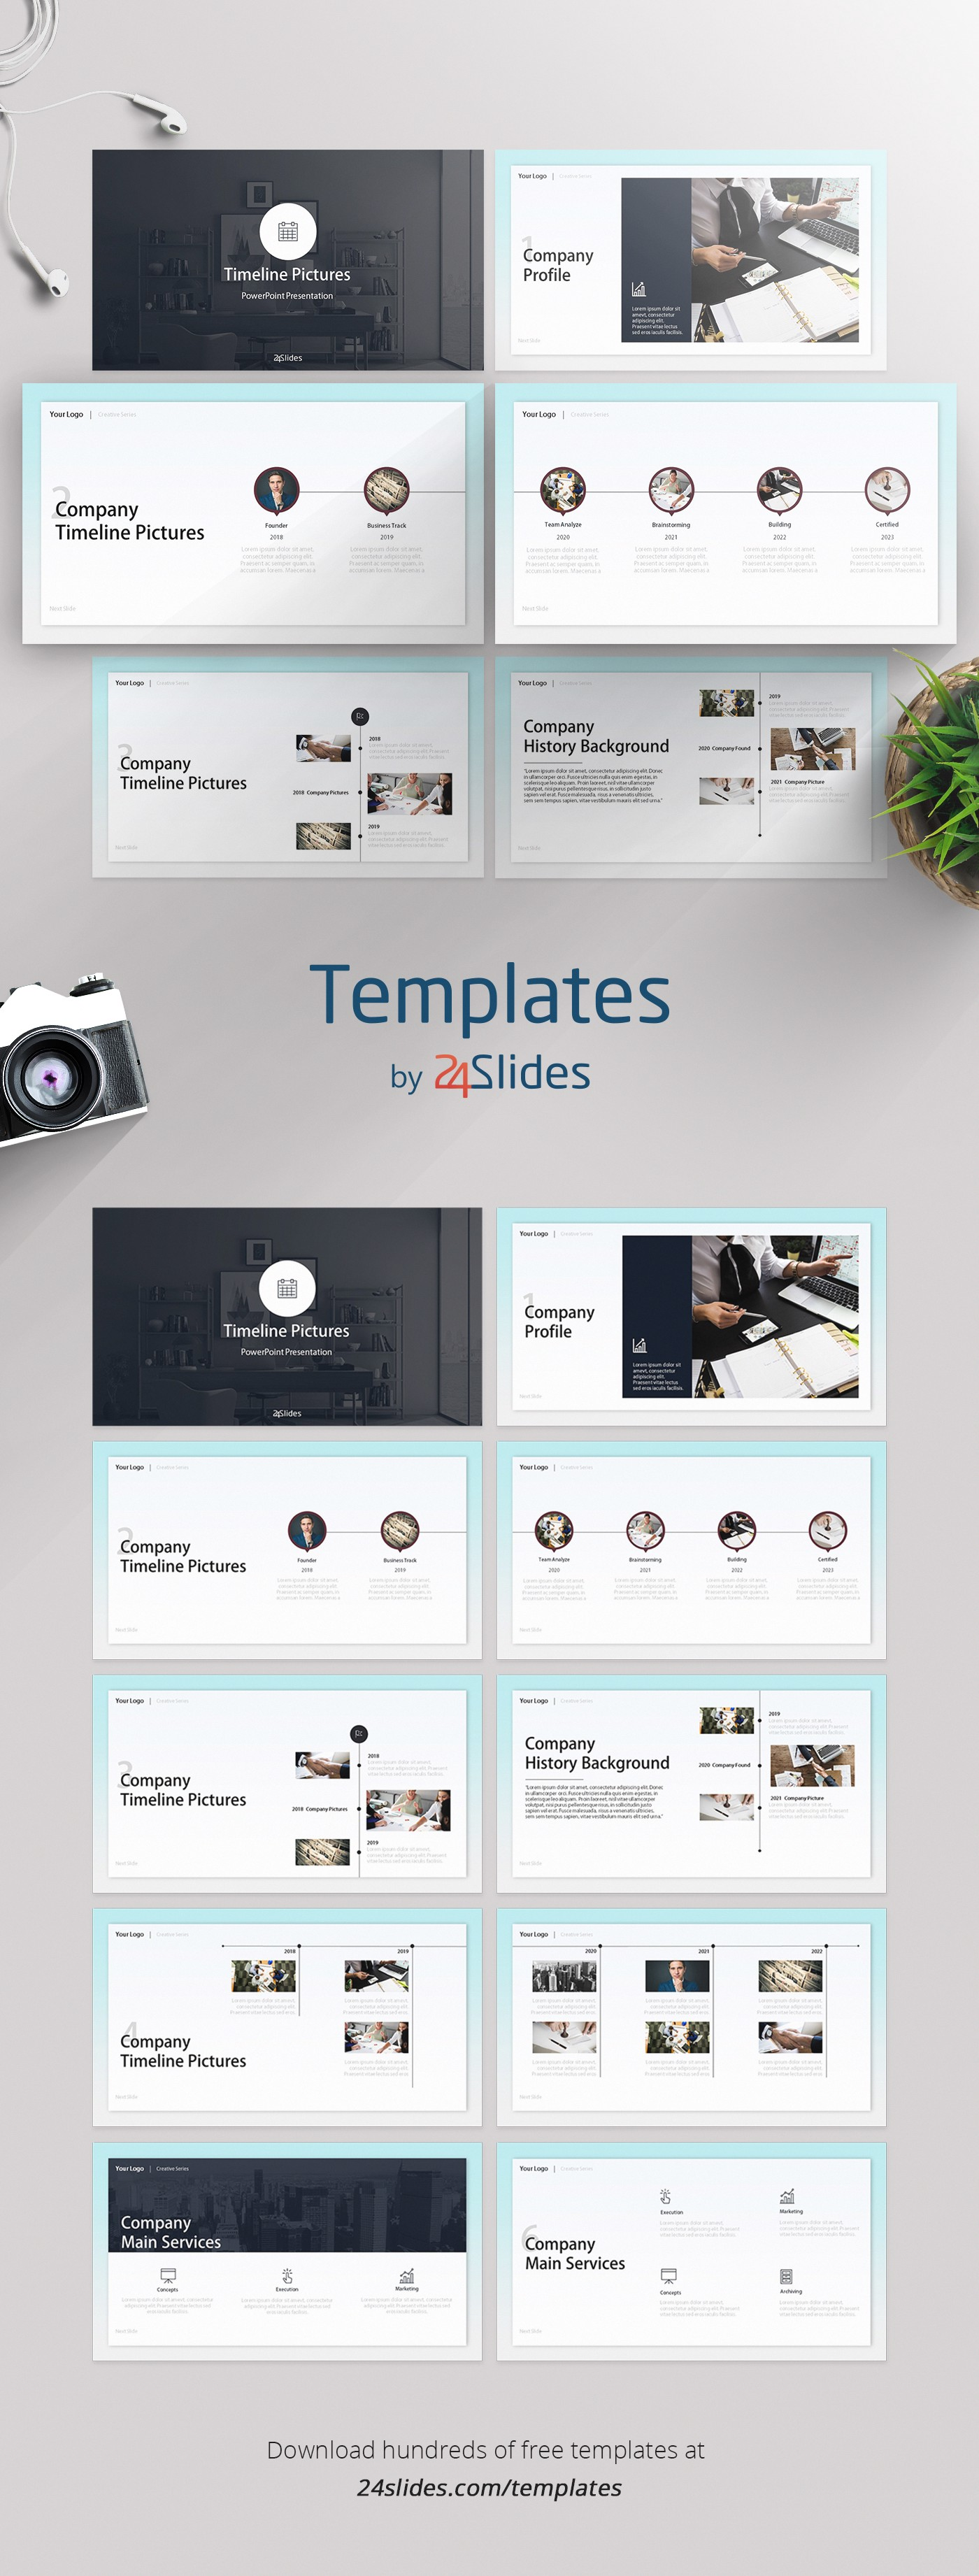 Timeline Picture Creative Presentation Template Free Download